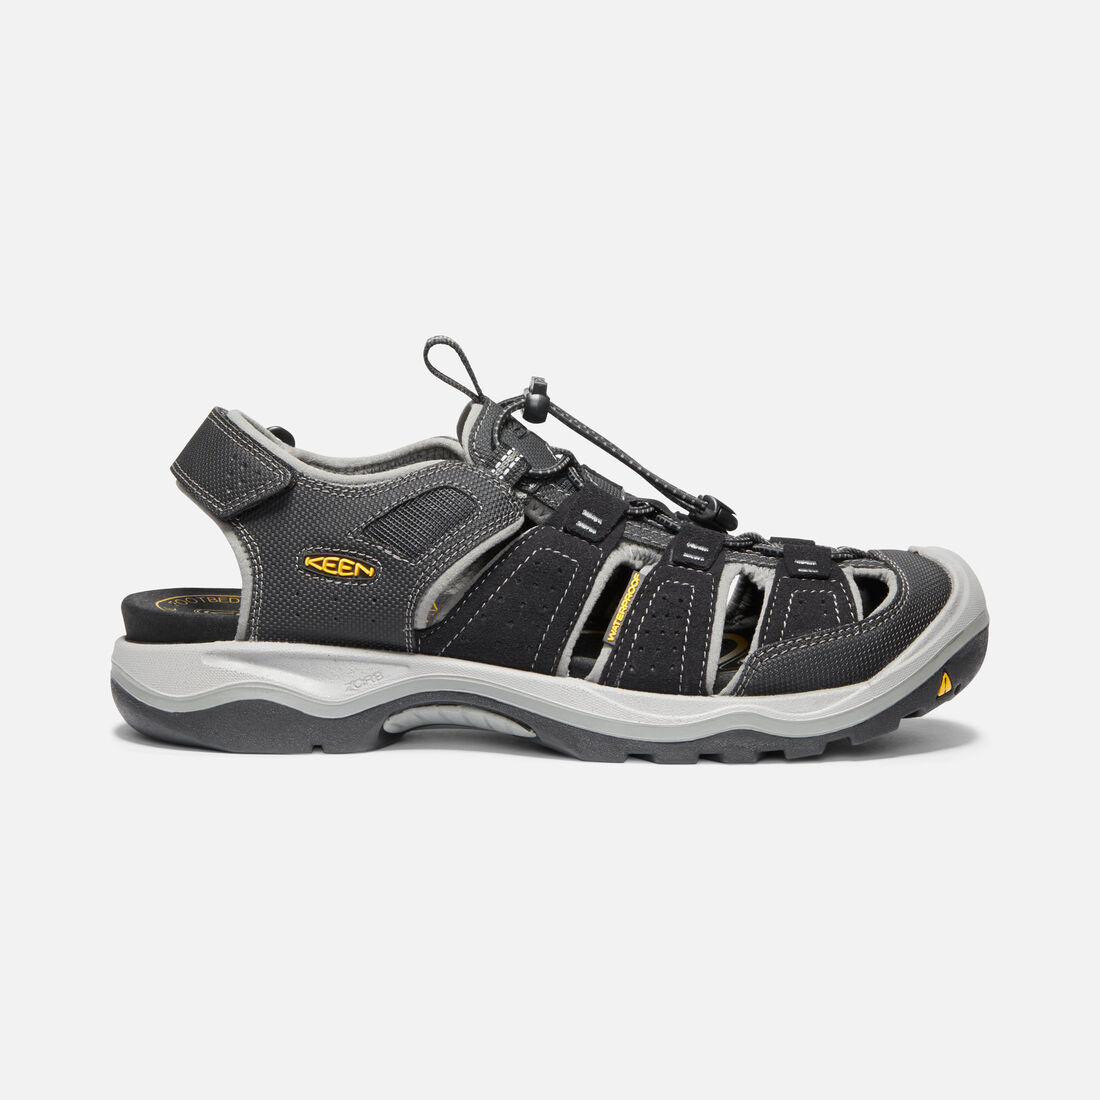 ee21a7a22a55 Men s Rialto II H2 - Men s Hiking Sandals With Bungee Laces